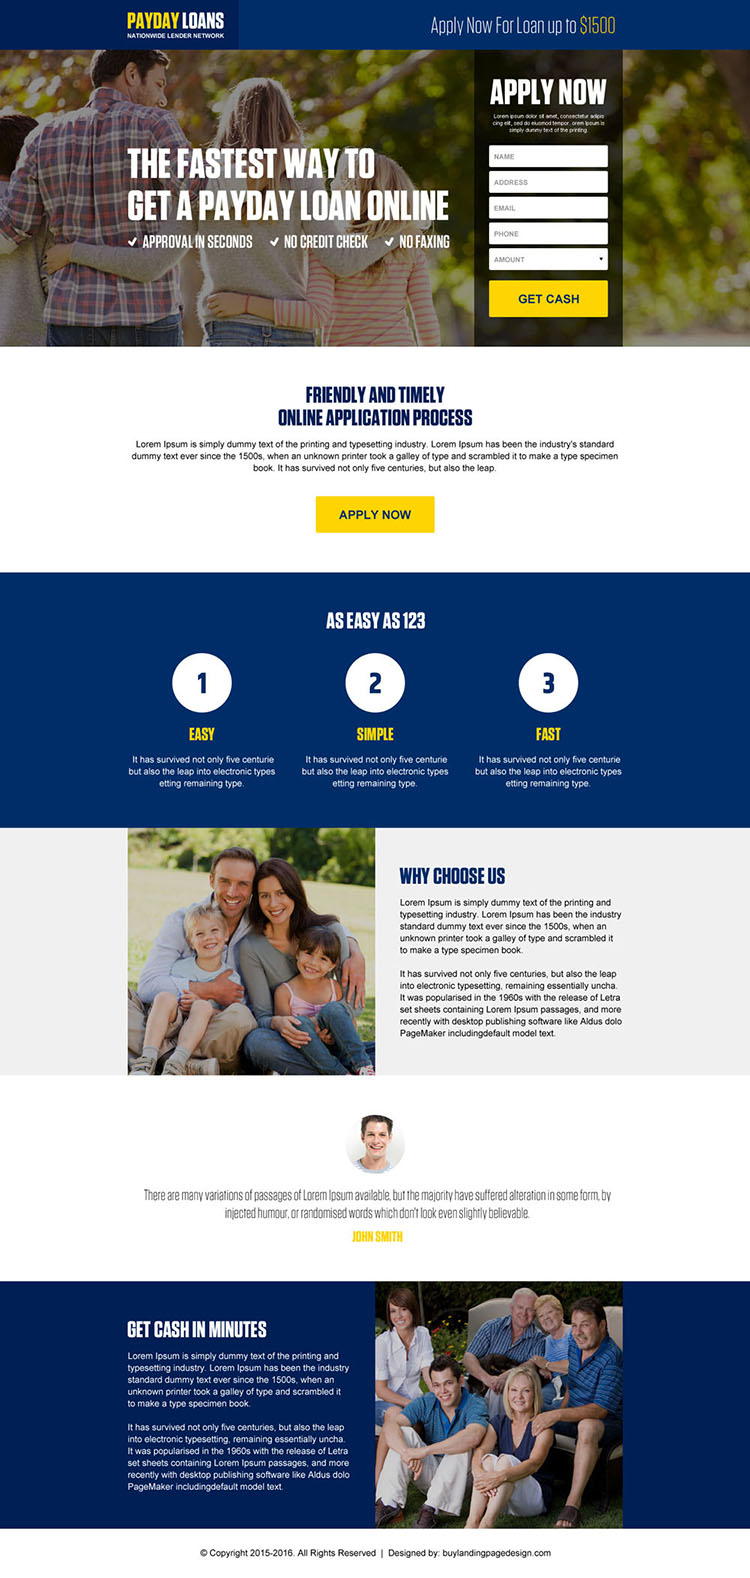 online payday loan application lead capture landing page design